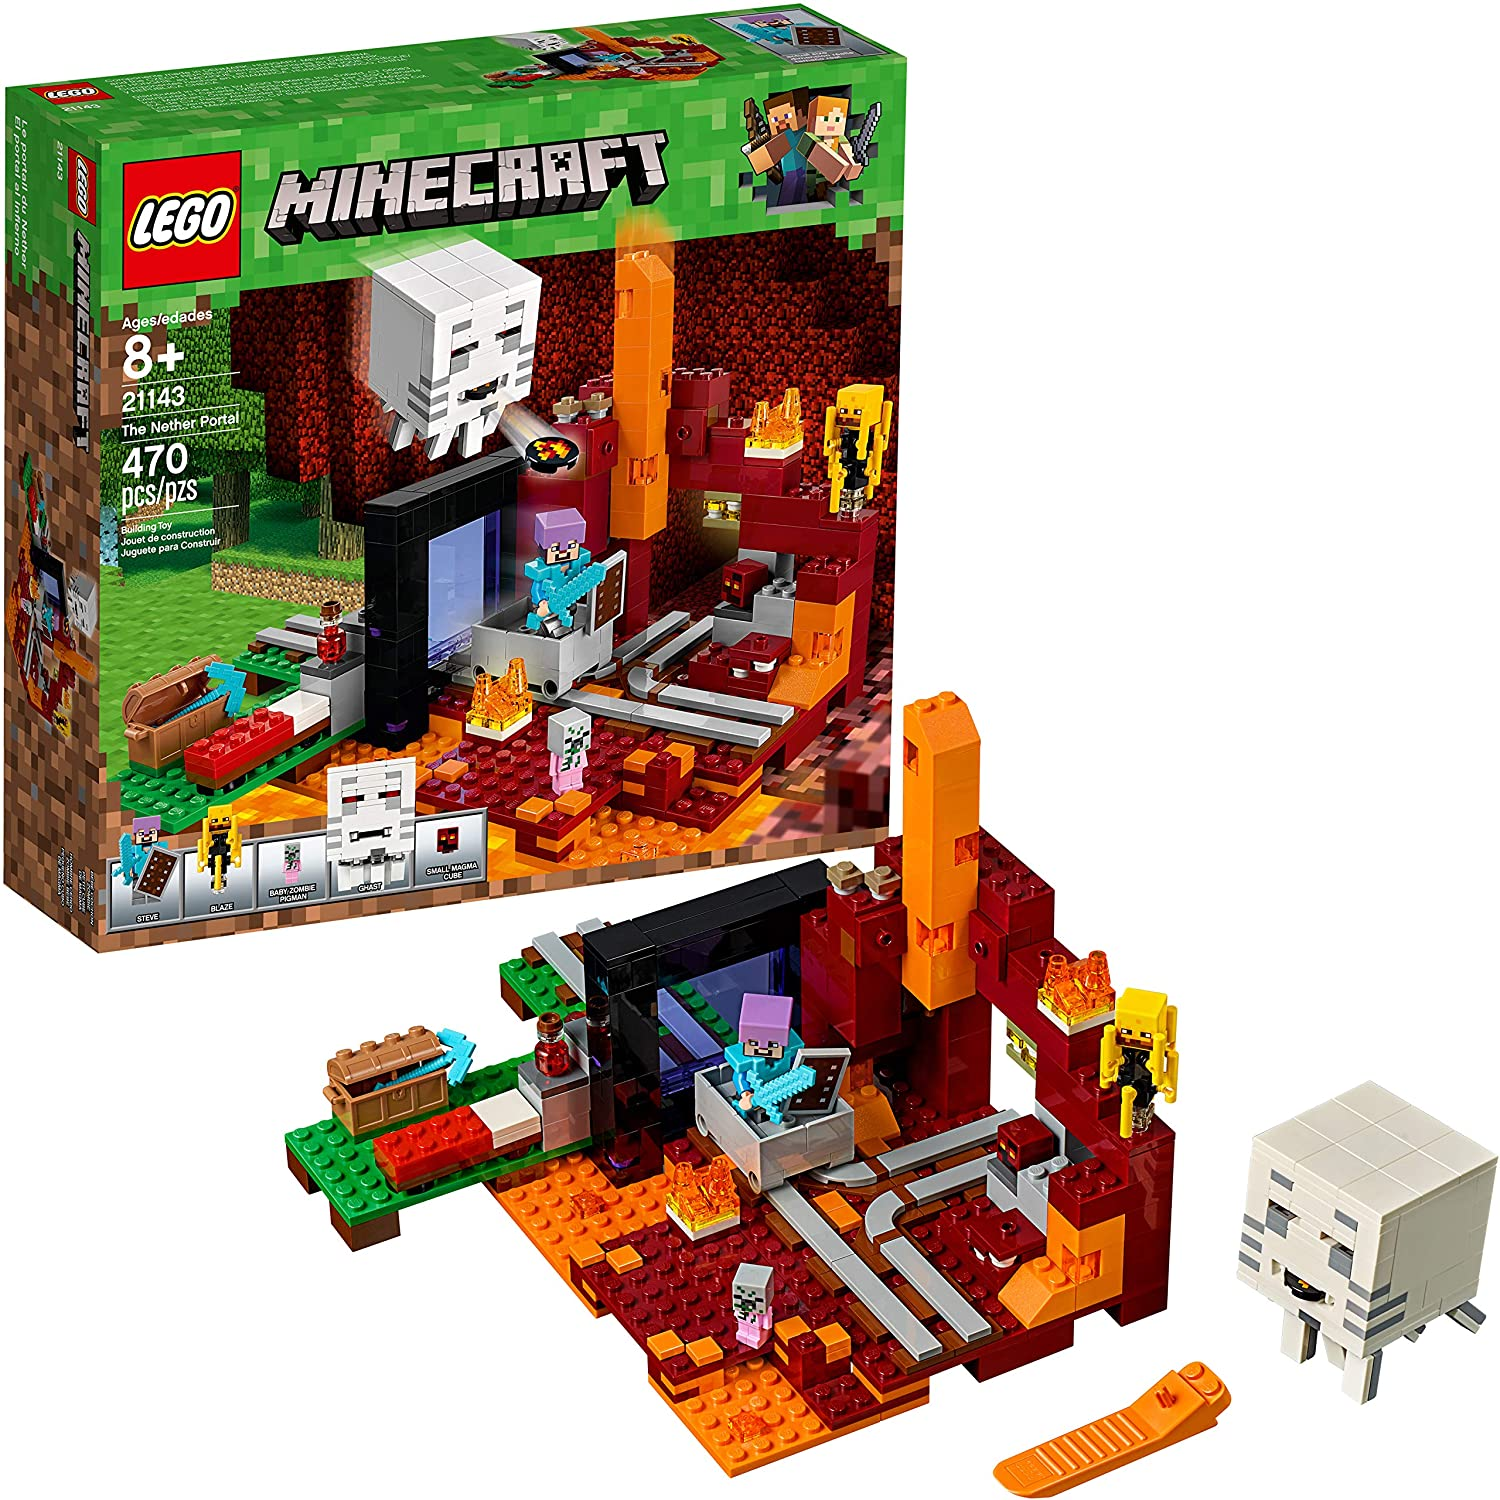 LEGO Minecraft The Nether Portal 21143 Building Kit (470 Pieces)